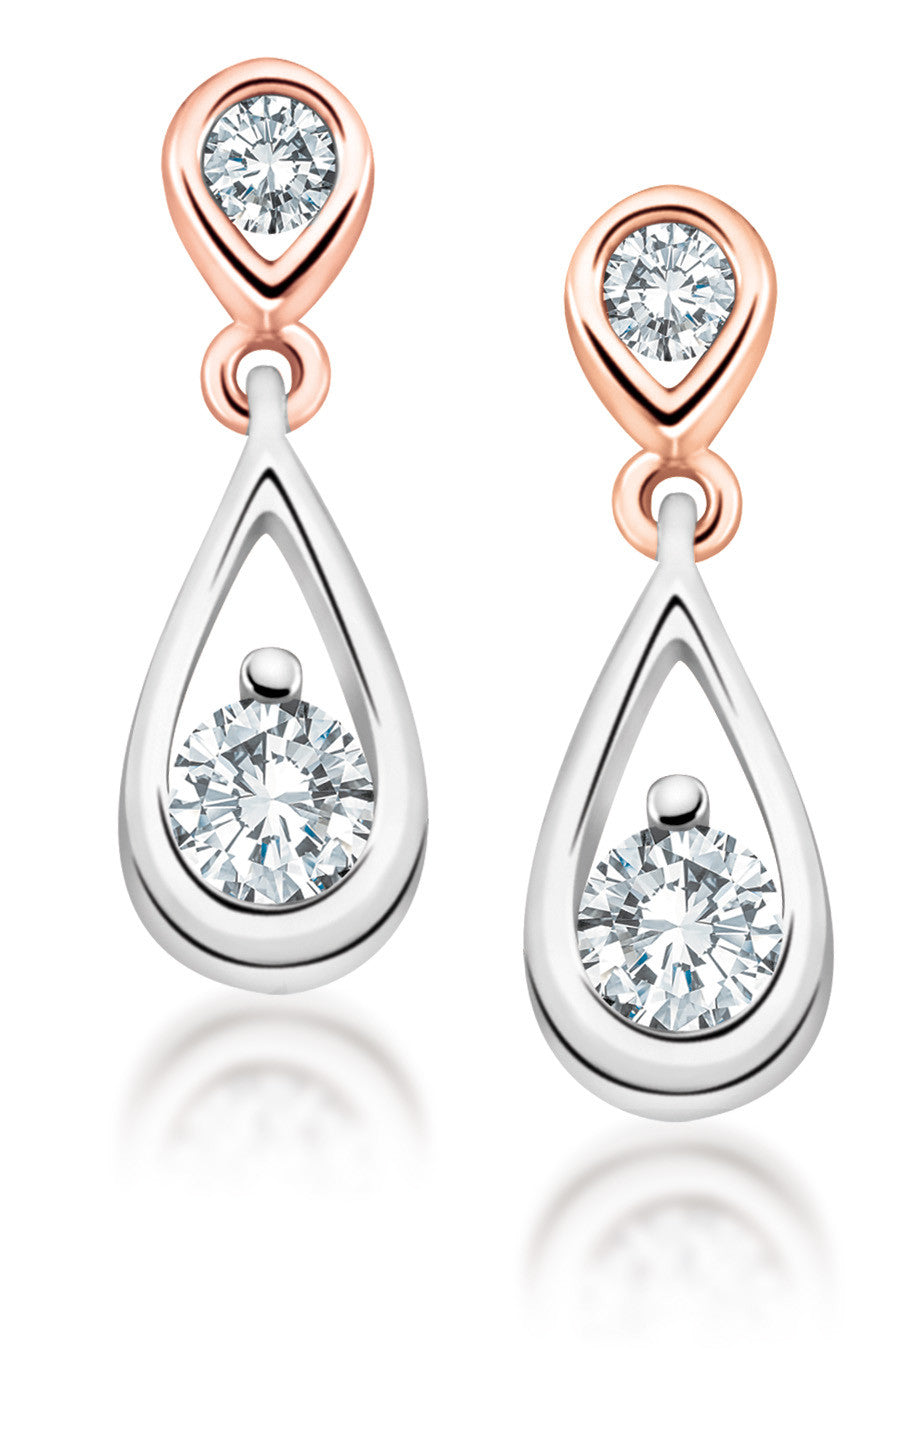 10Kt White Gold Diamond Drop Earrings with Rose Gold Accent